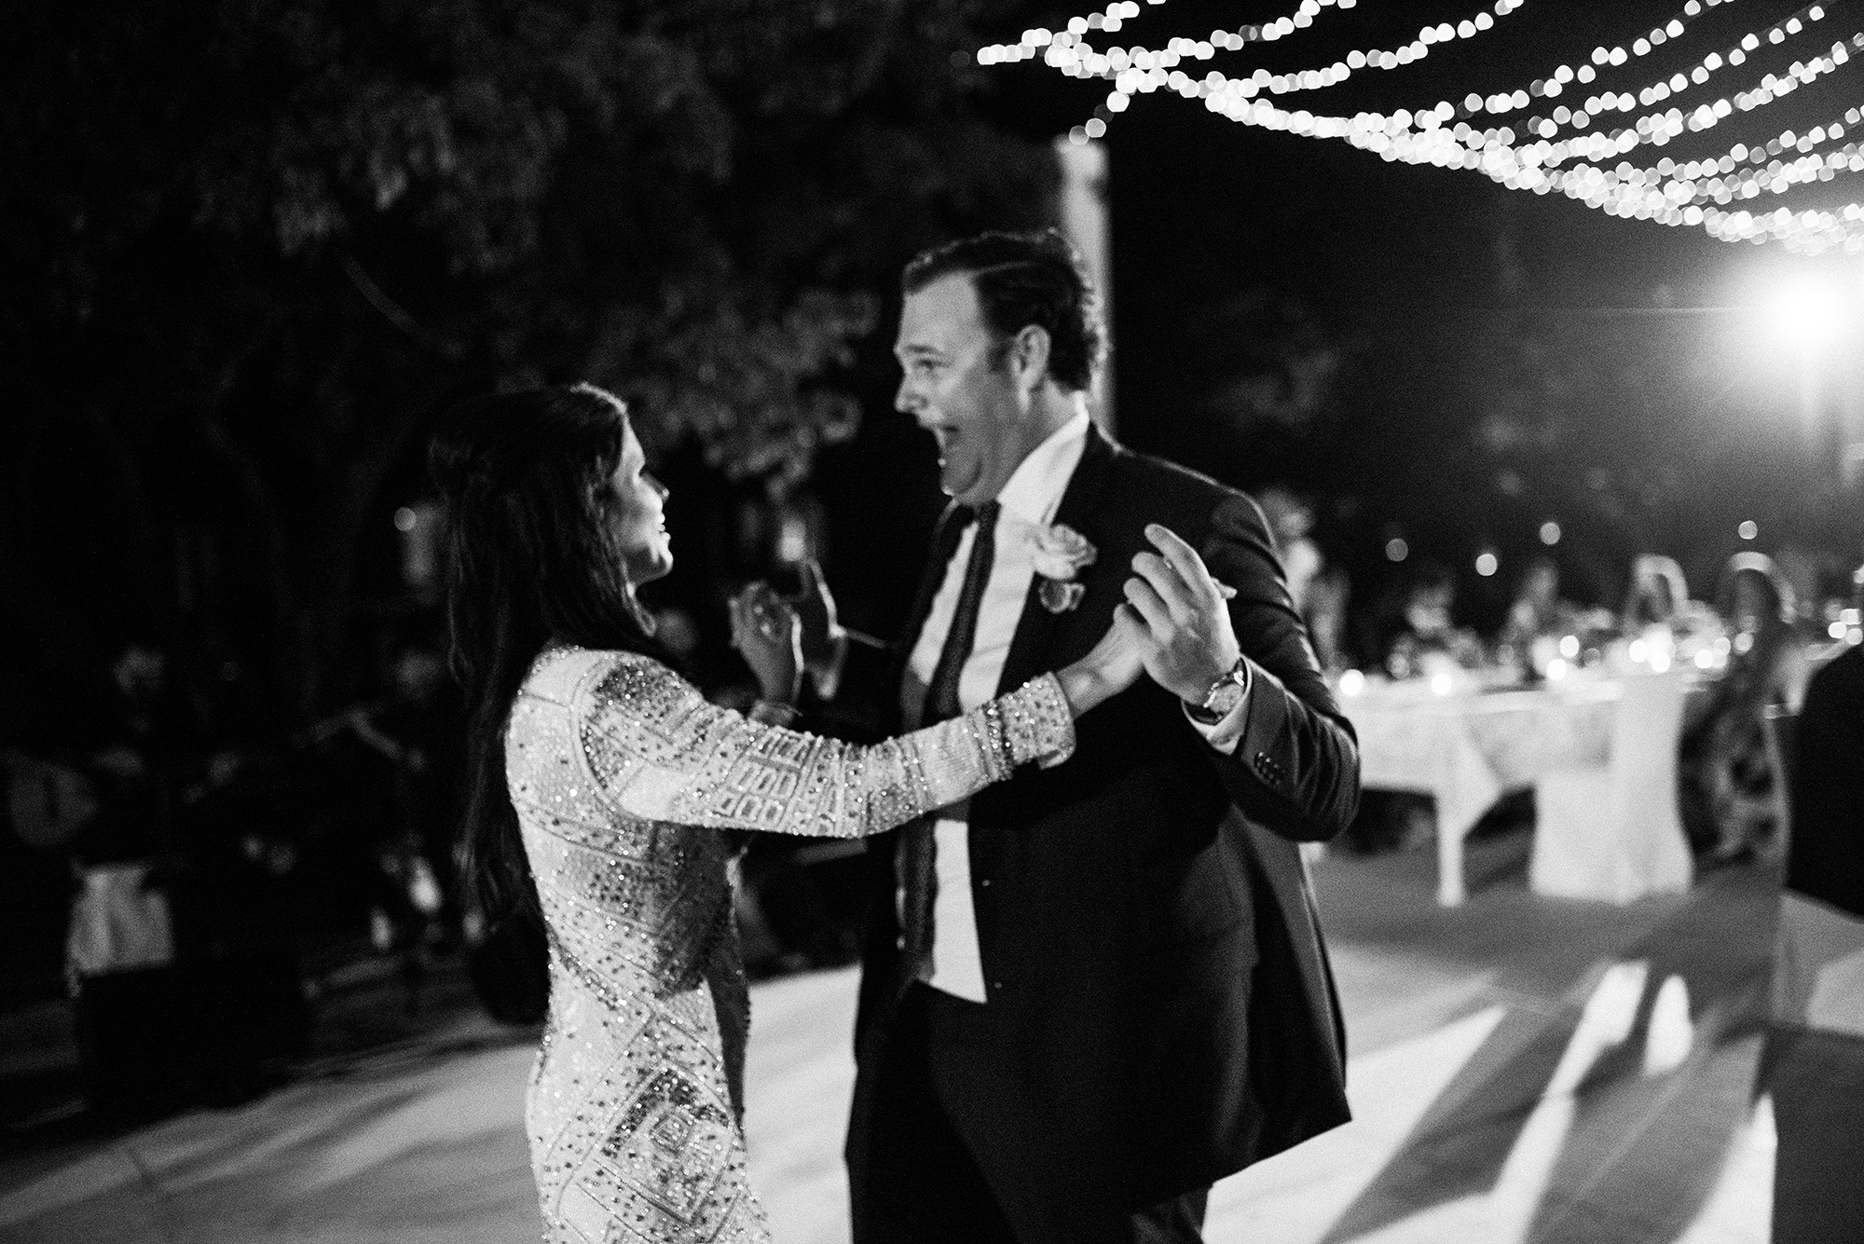 groom smiles boldly at bride during reception dance